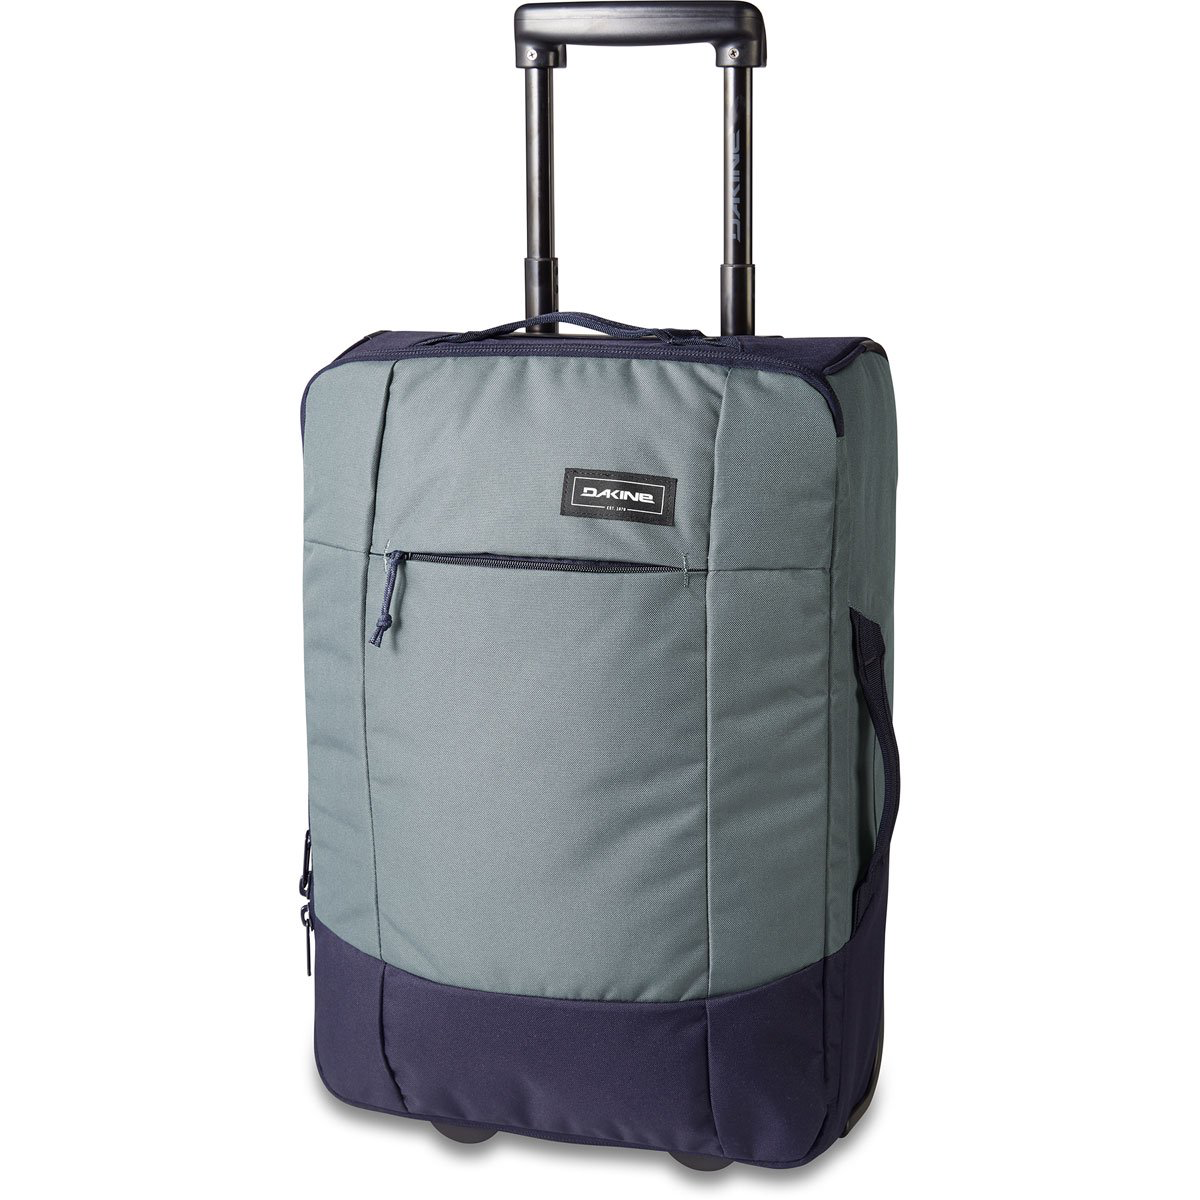 DAKINE DAKINE CARRY ON EQ ROLLER 40L LUGGAGE